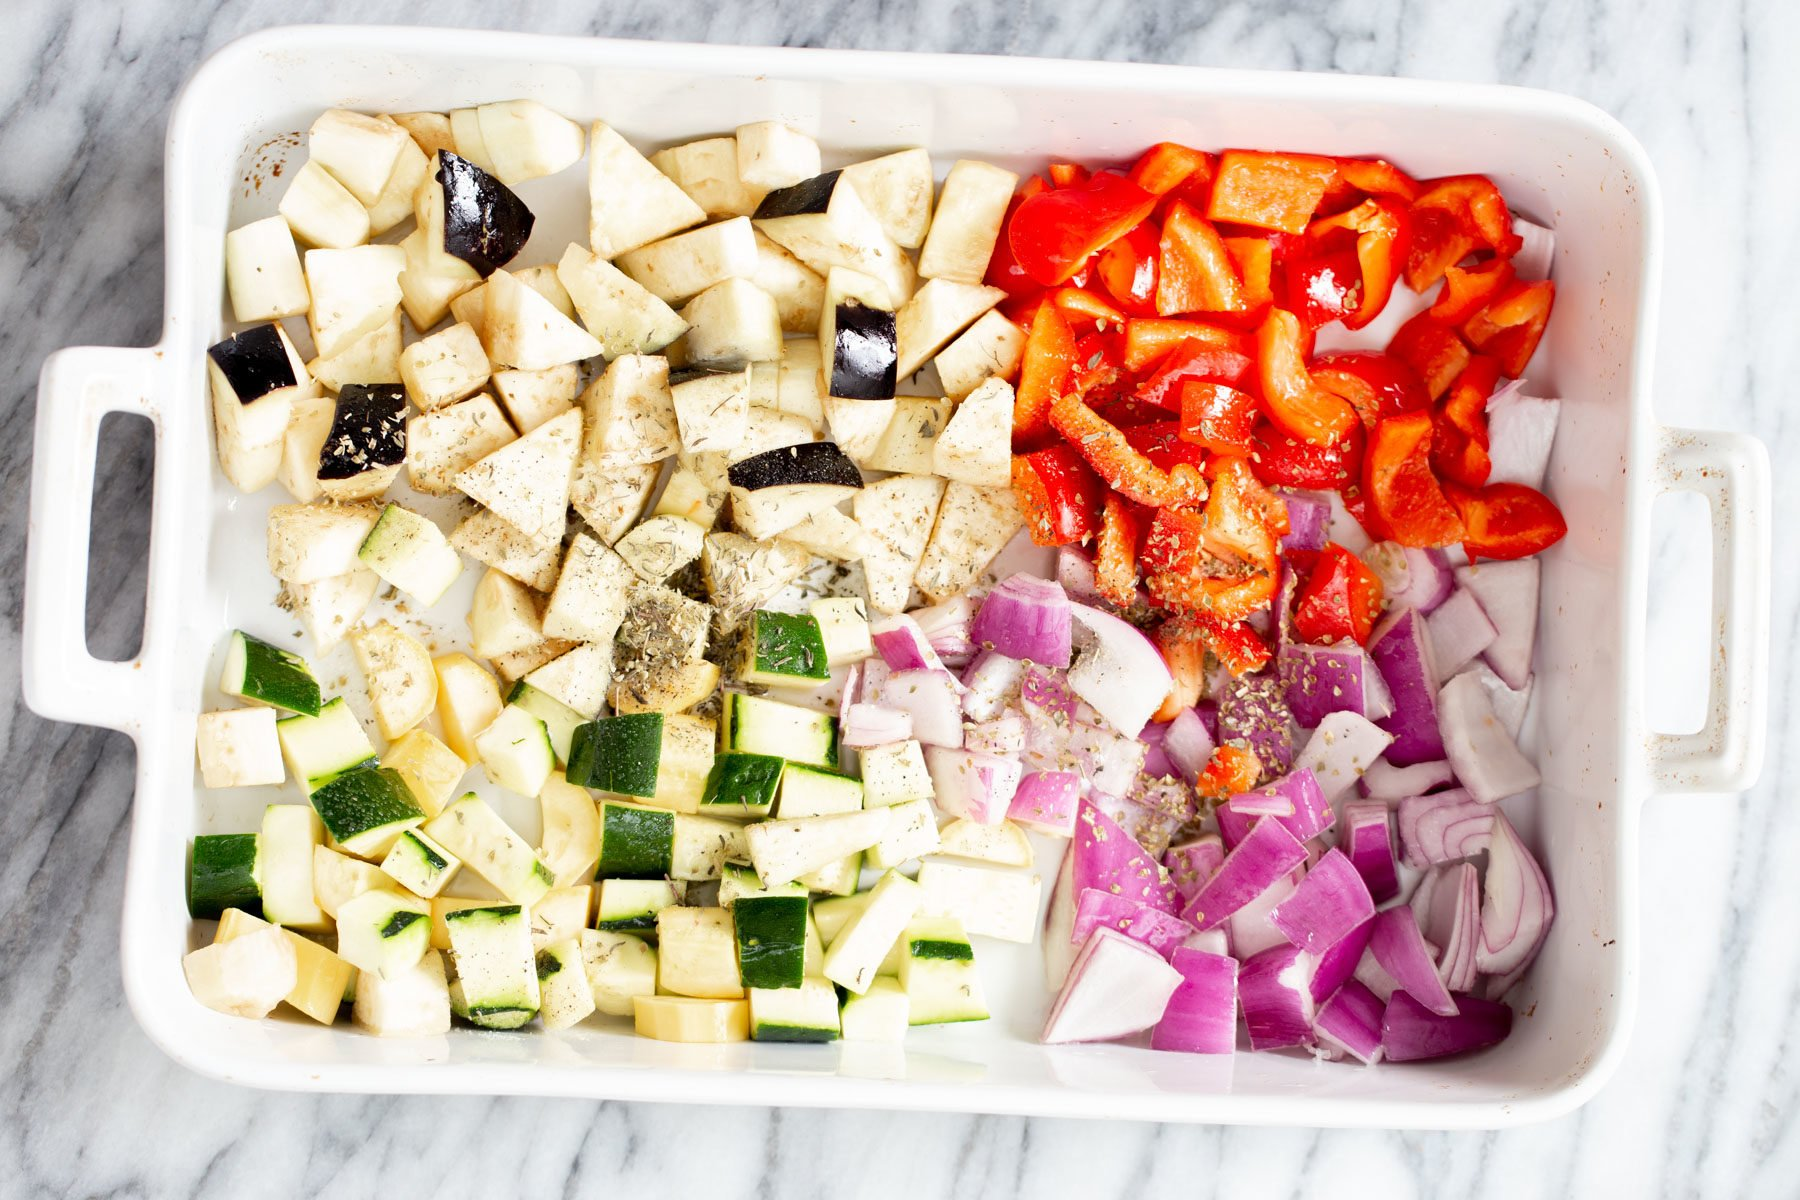 veggies for baked ratatouille in a casserole dish